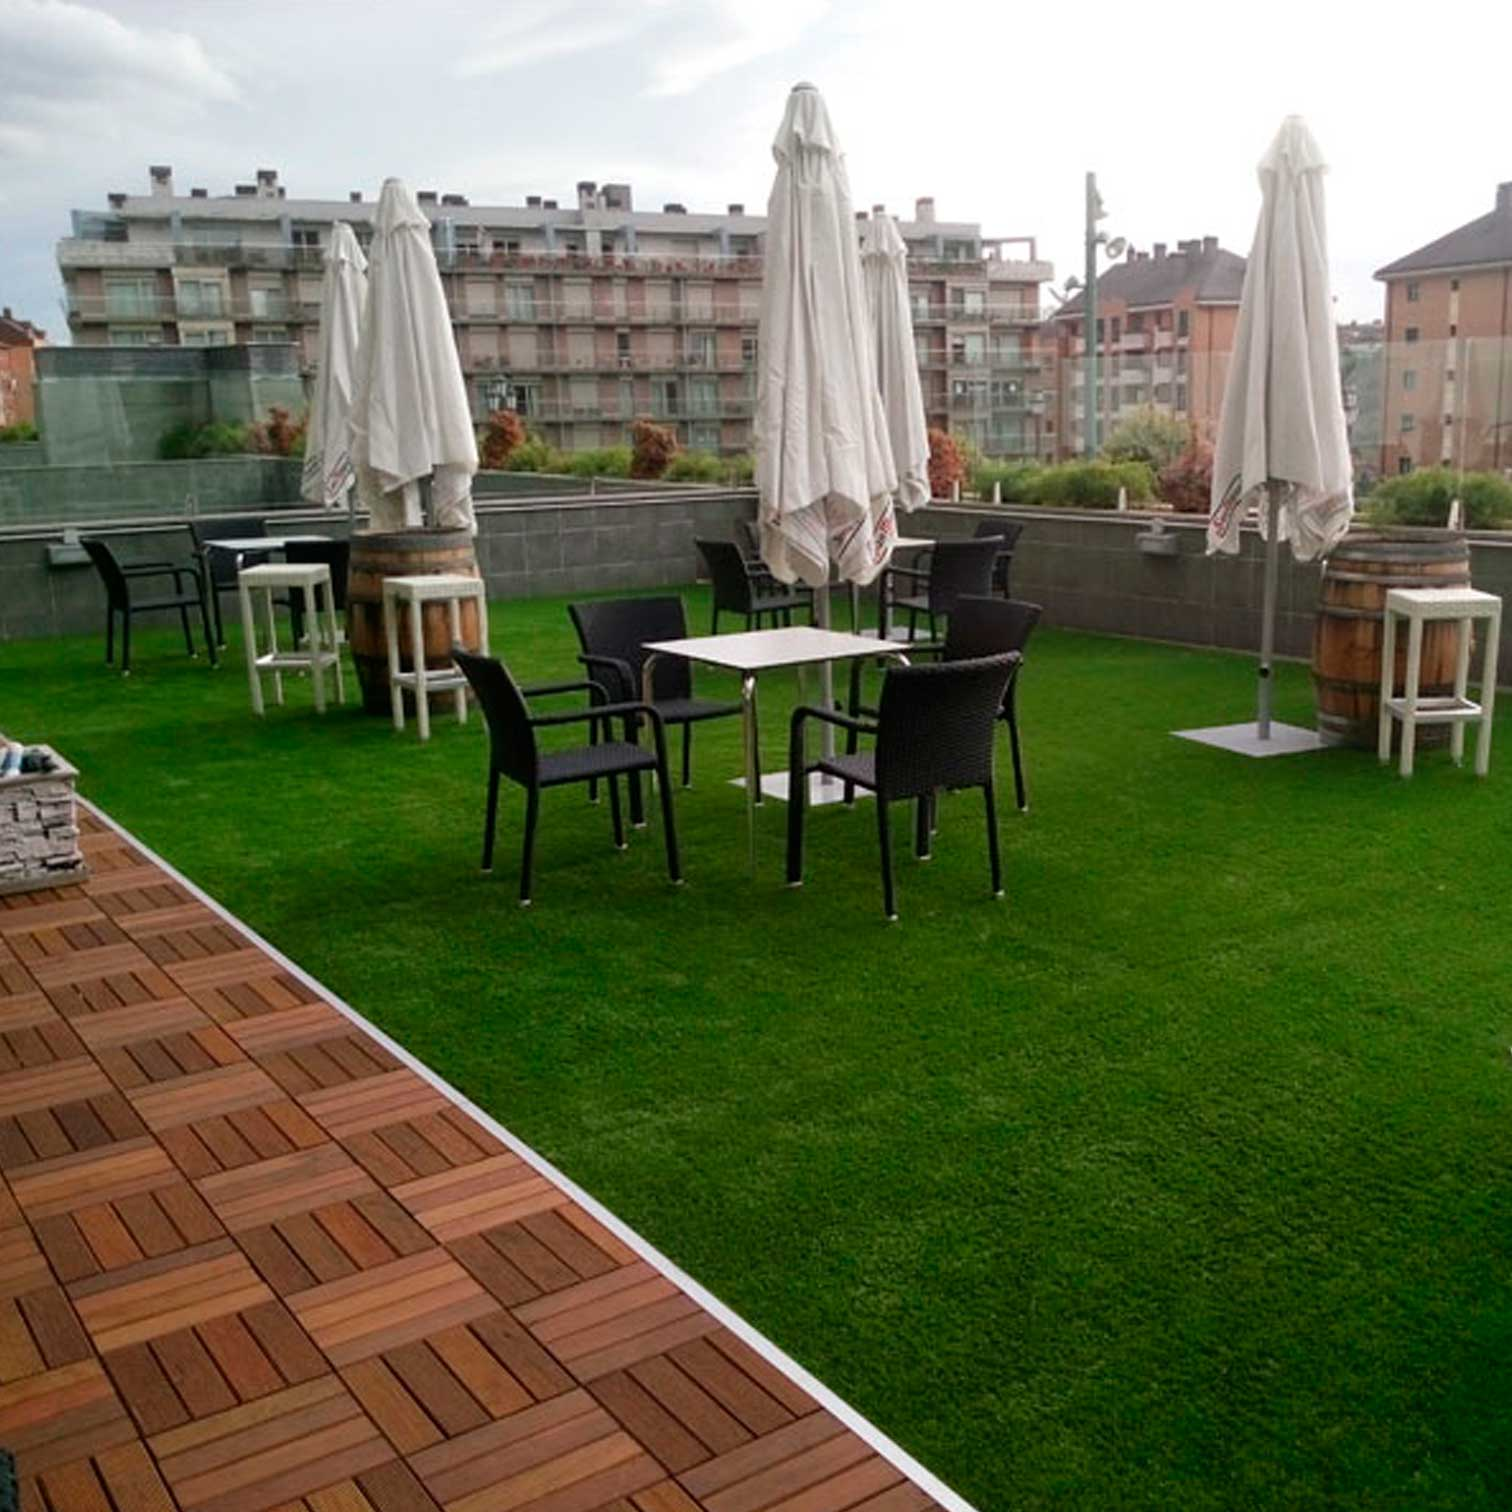 Cesped artificial terraza simple ten tu terraza lista en pasos with cesped artificial terraza - Terrazas con cesped artificial ...